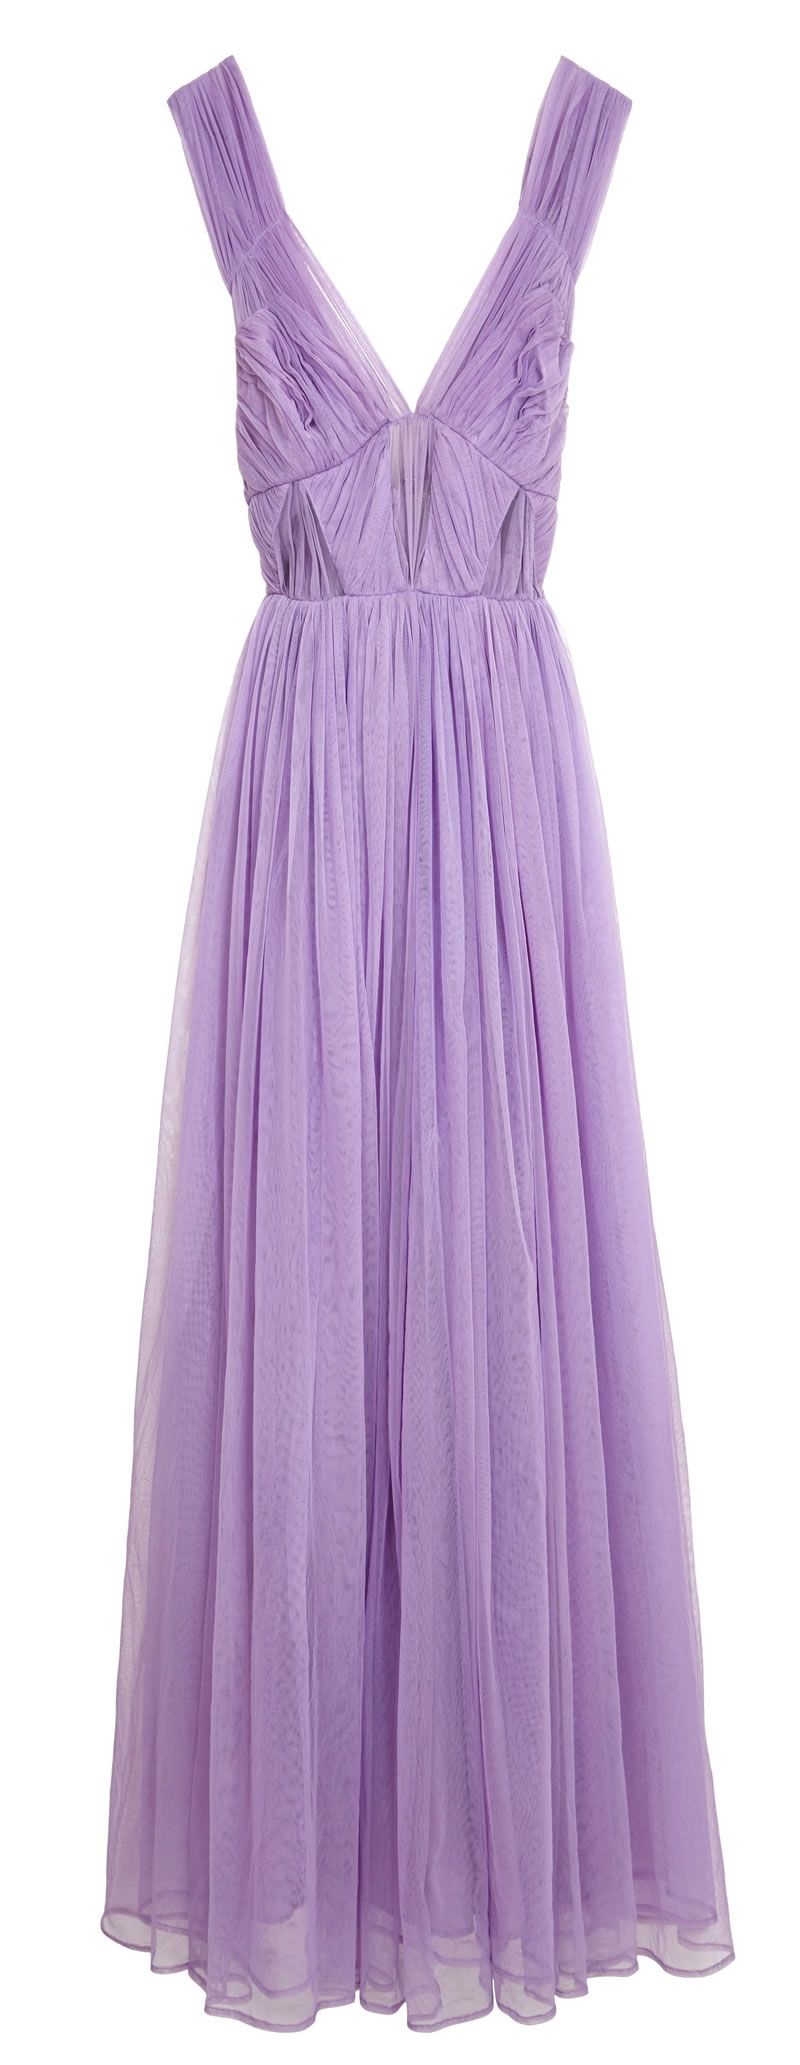 asos-bridesmaid-collection-ASOS Wedding Ruched Mesh Panel Maxi ú95